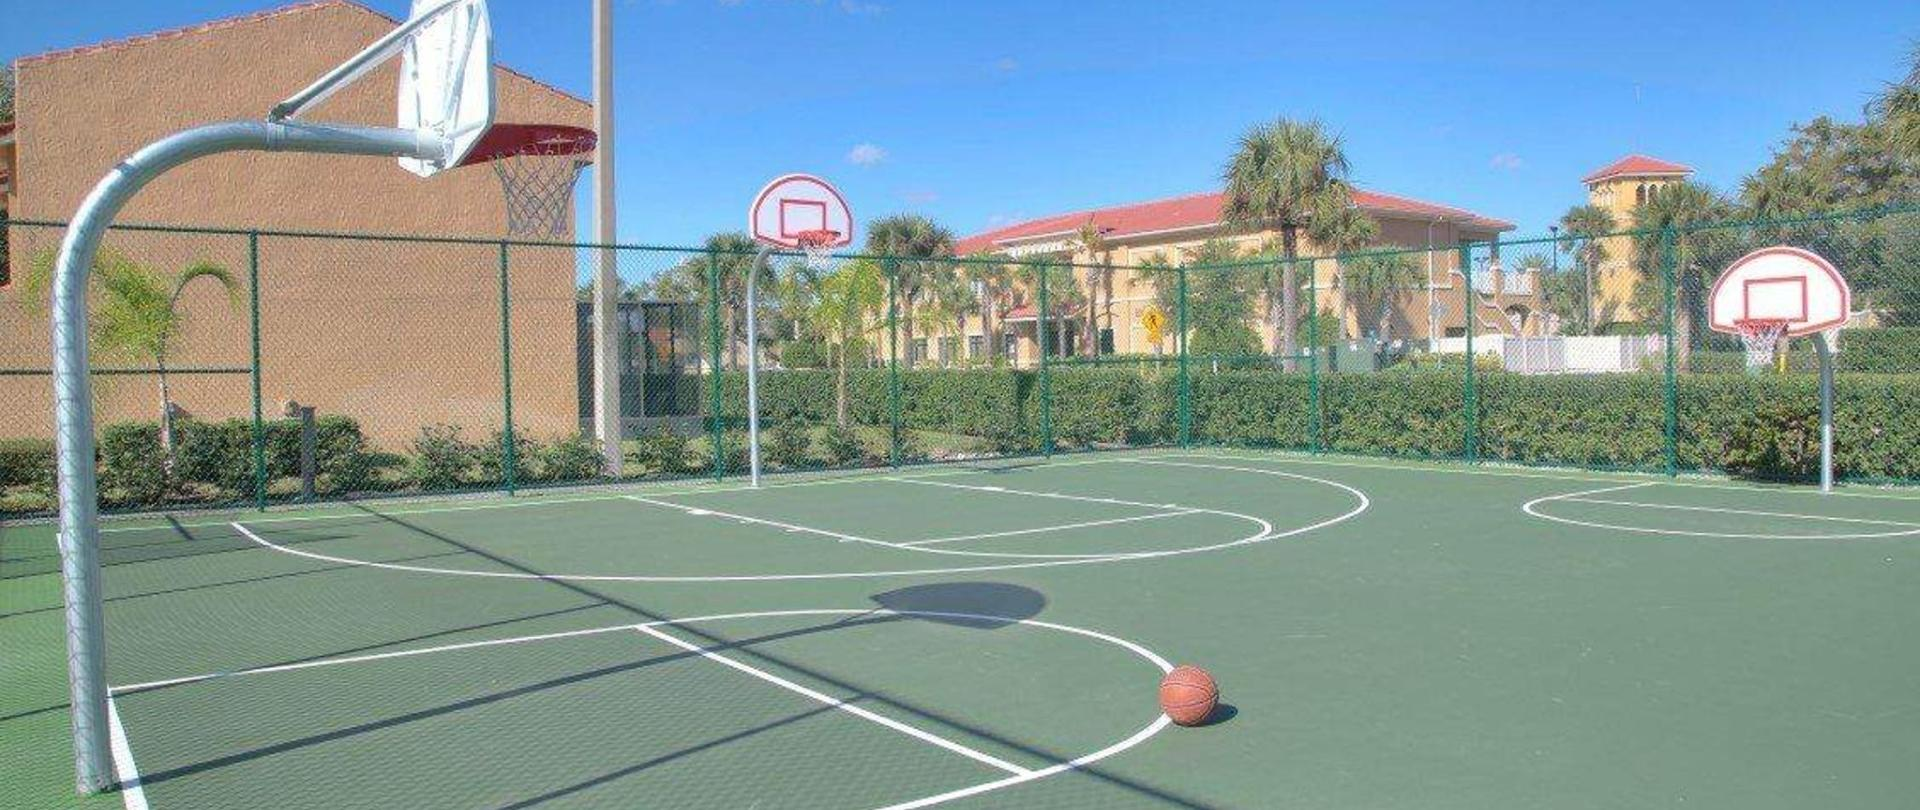 basketball-court-with-3-hoops1.jpg